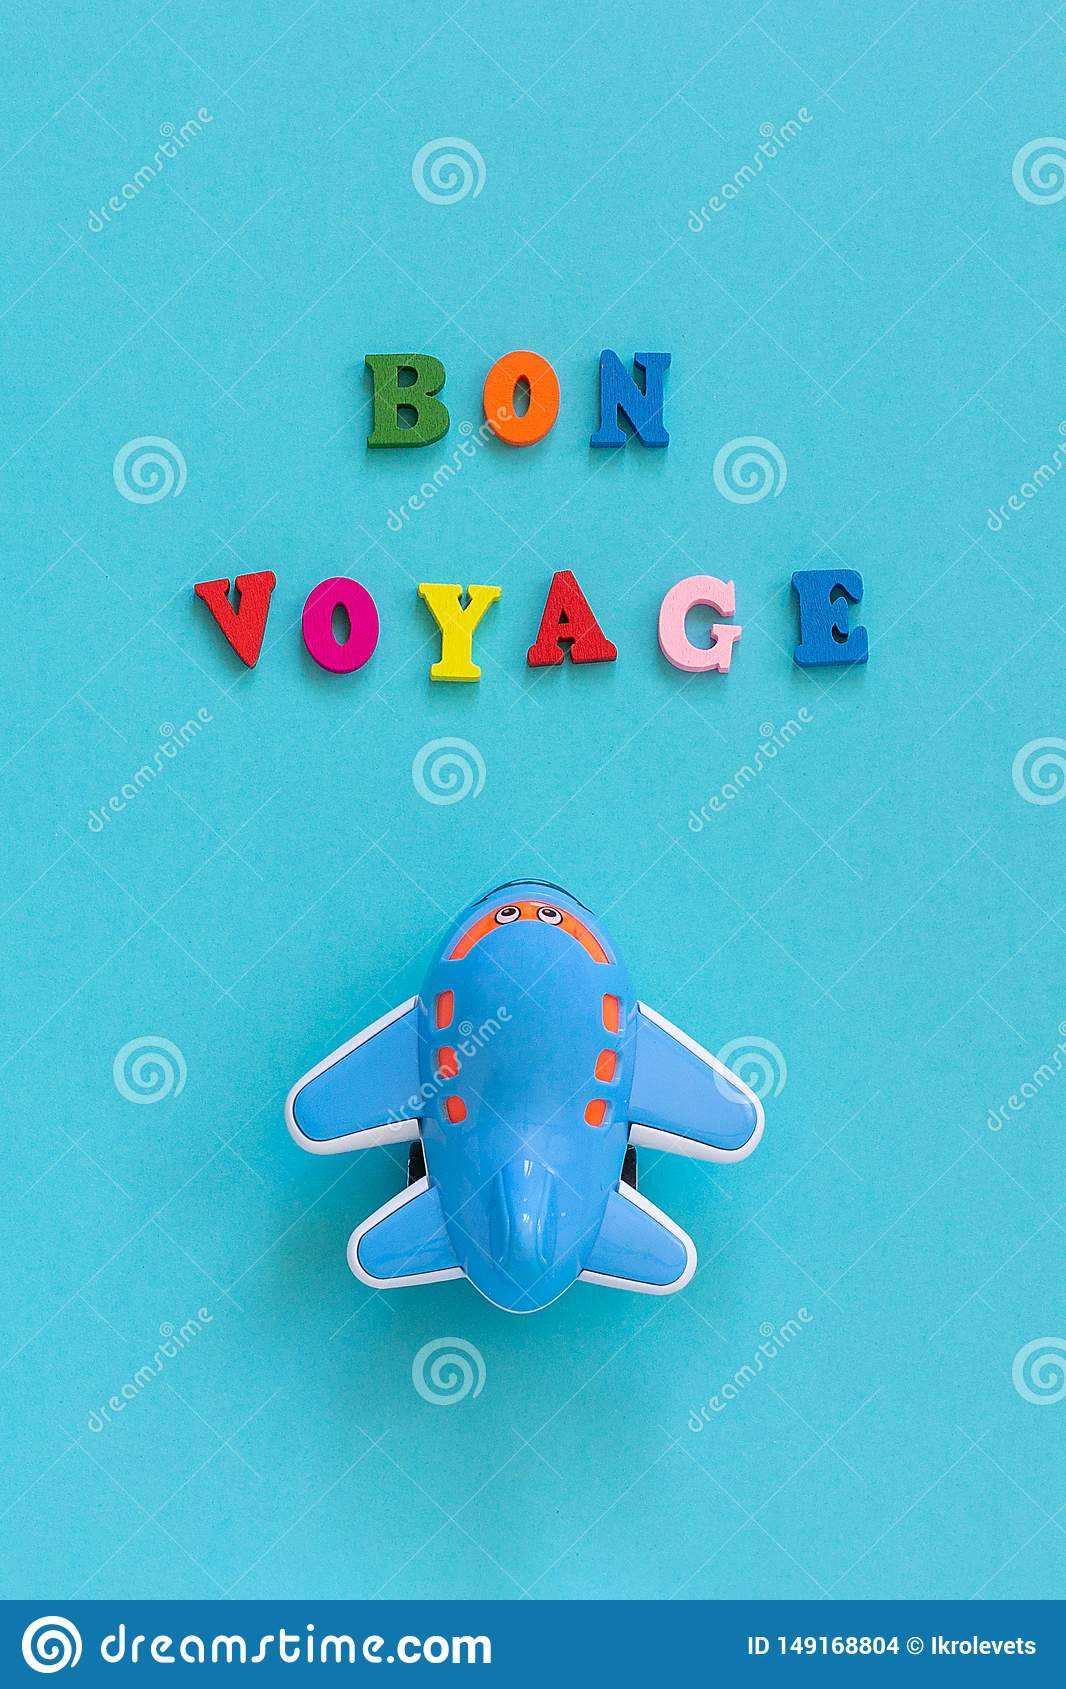 Bon Voyage Colorful Text And Children`s Funny Toy Plane On Throughout Bon Voyage Card Template